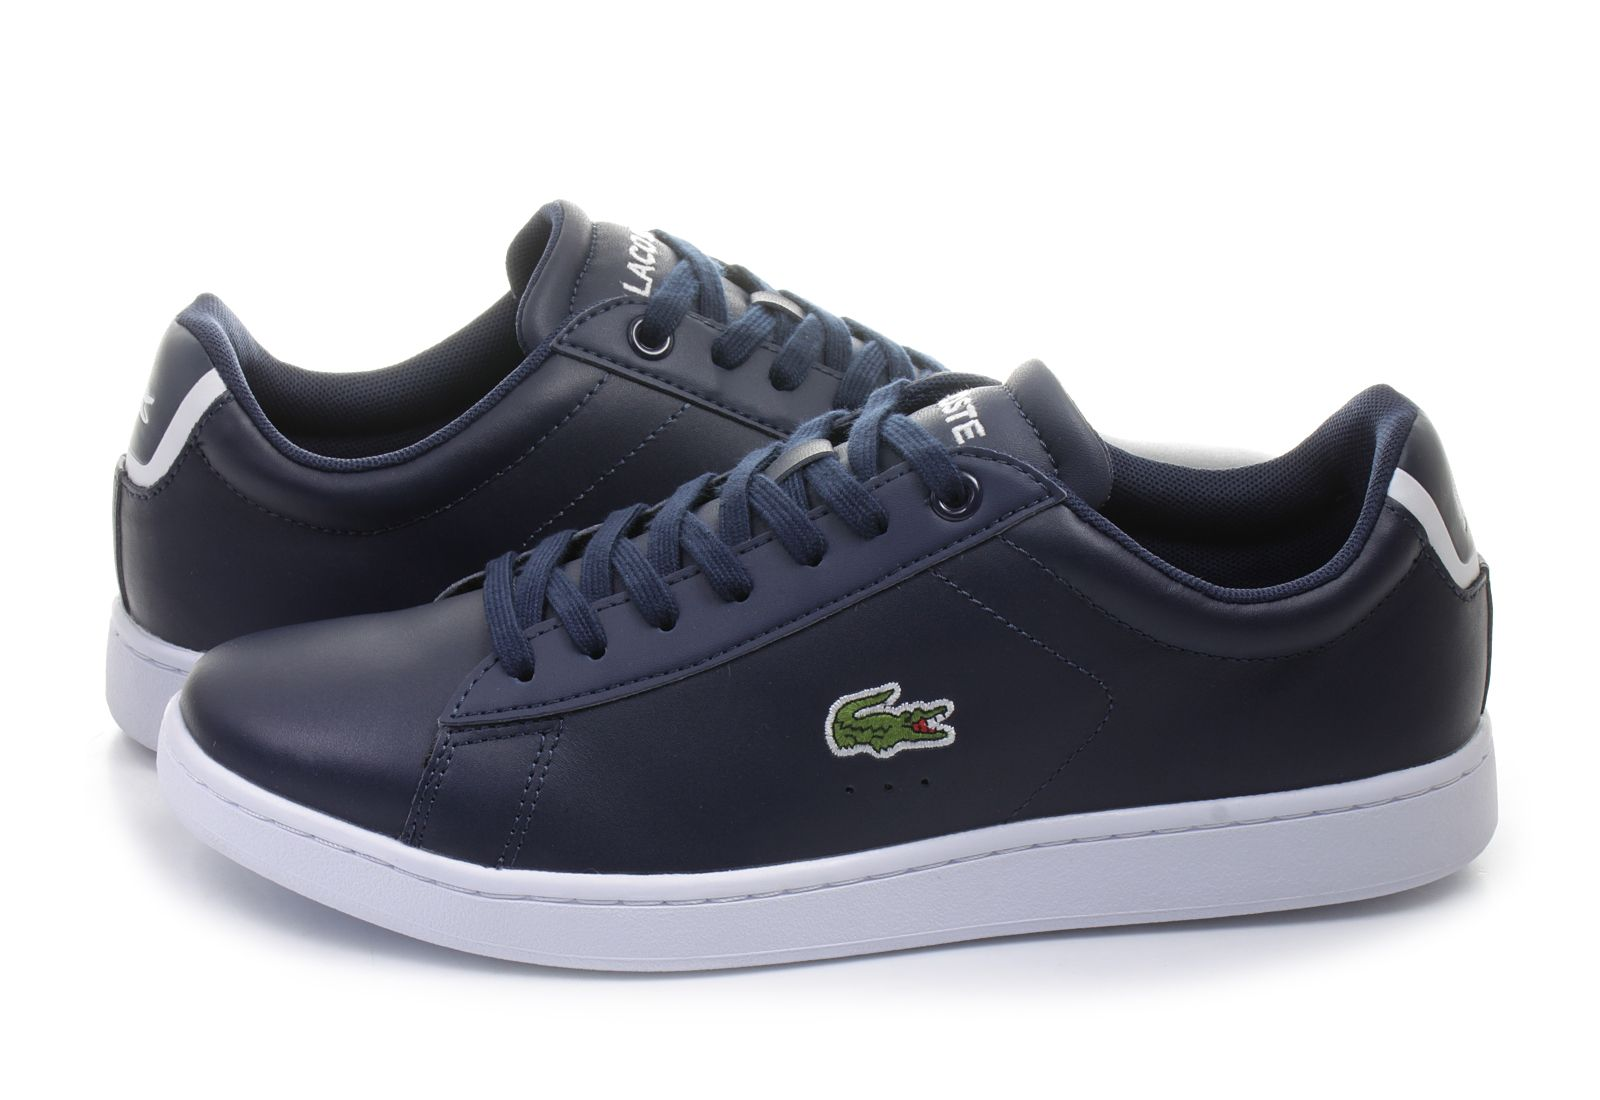 lacoste shoes carnaby evo 171spm1002 003 online shop for sneakers shoes and boots. Black Bedroom Furniture Sets. Home Design Ideas